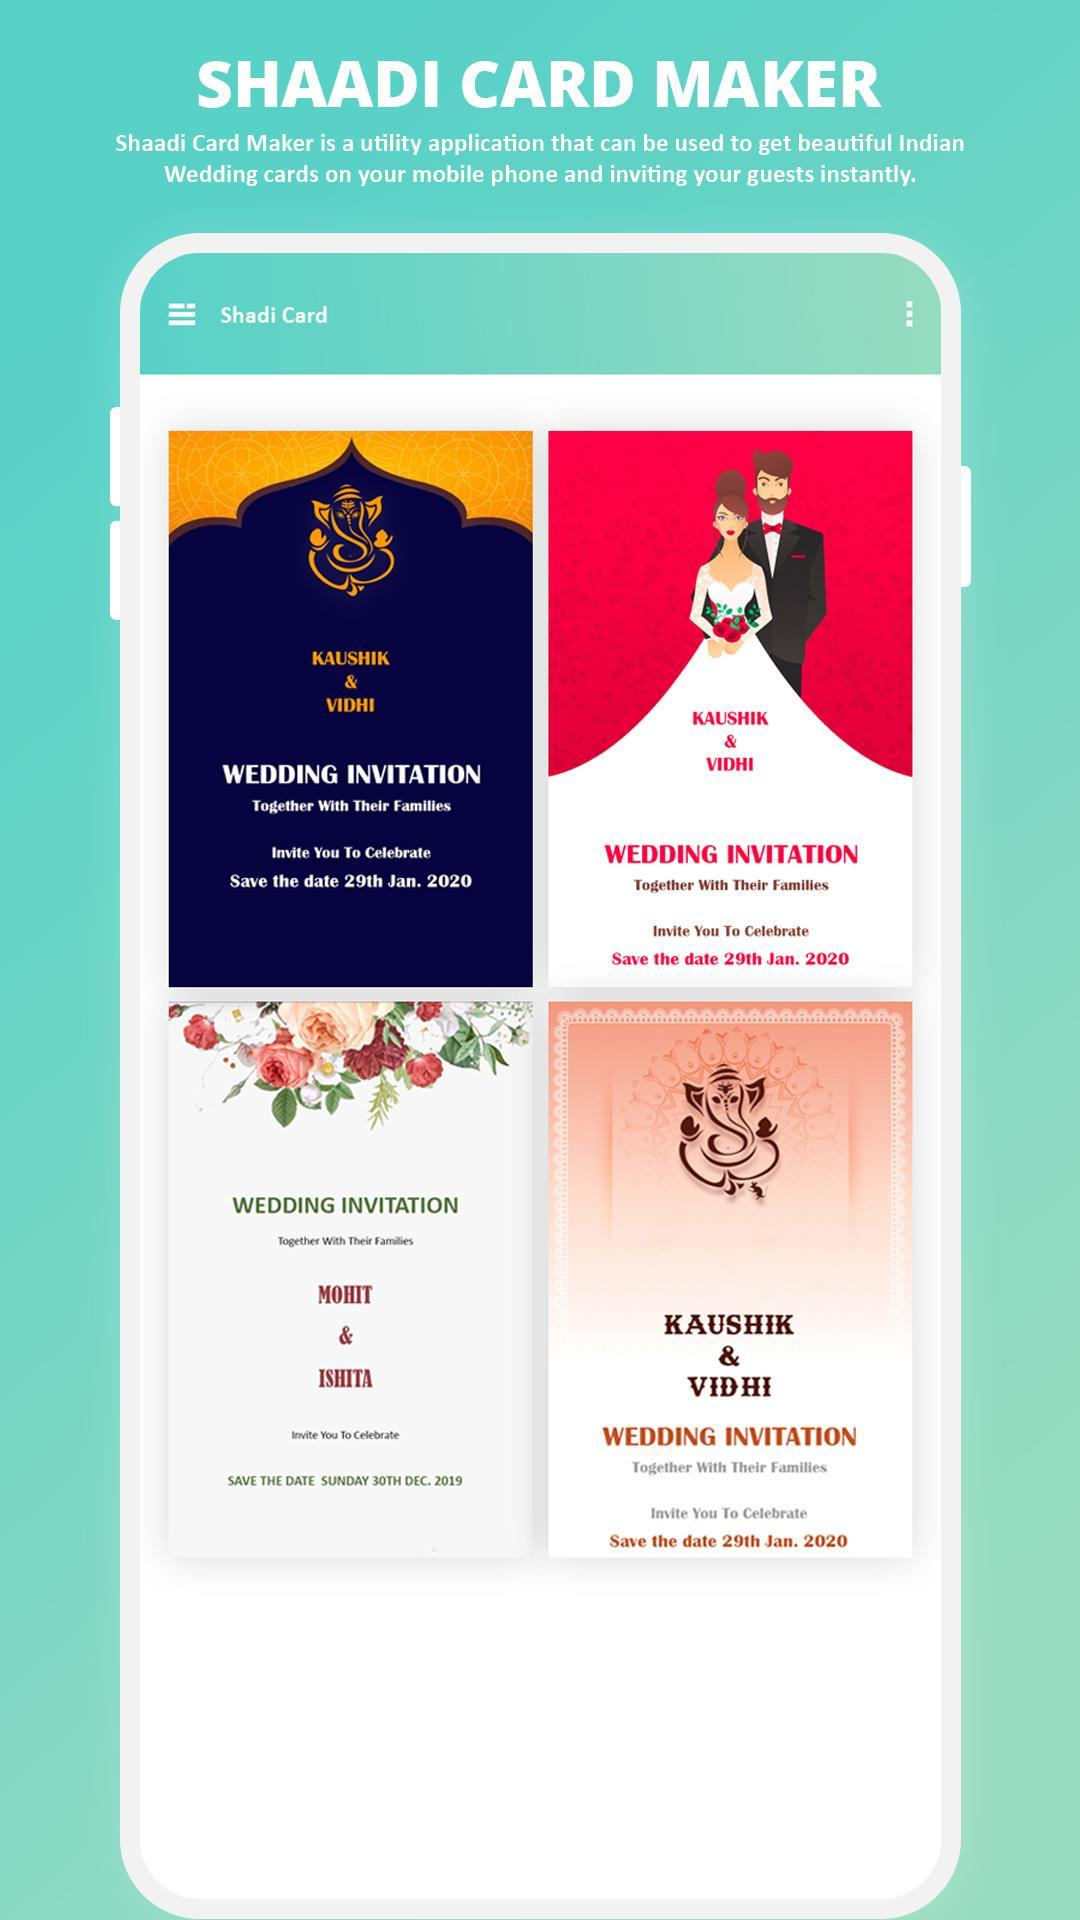 Wedding Invitation Card Maker Shaadi Card 2020 For Android Apk Download